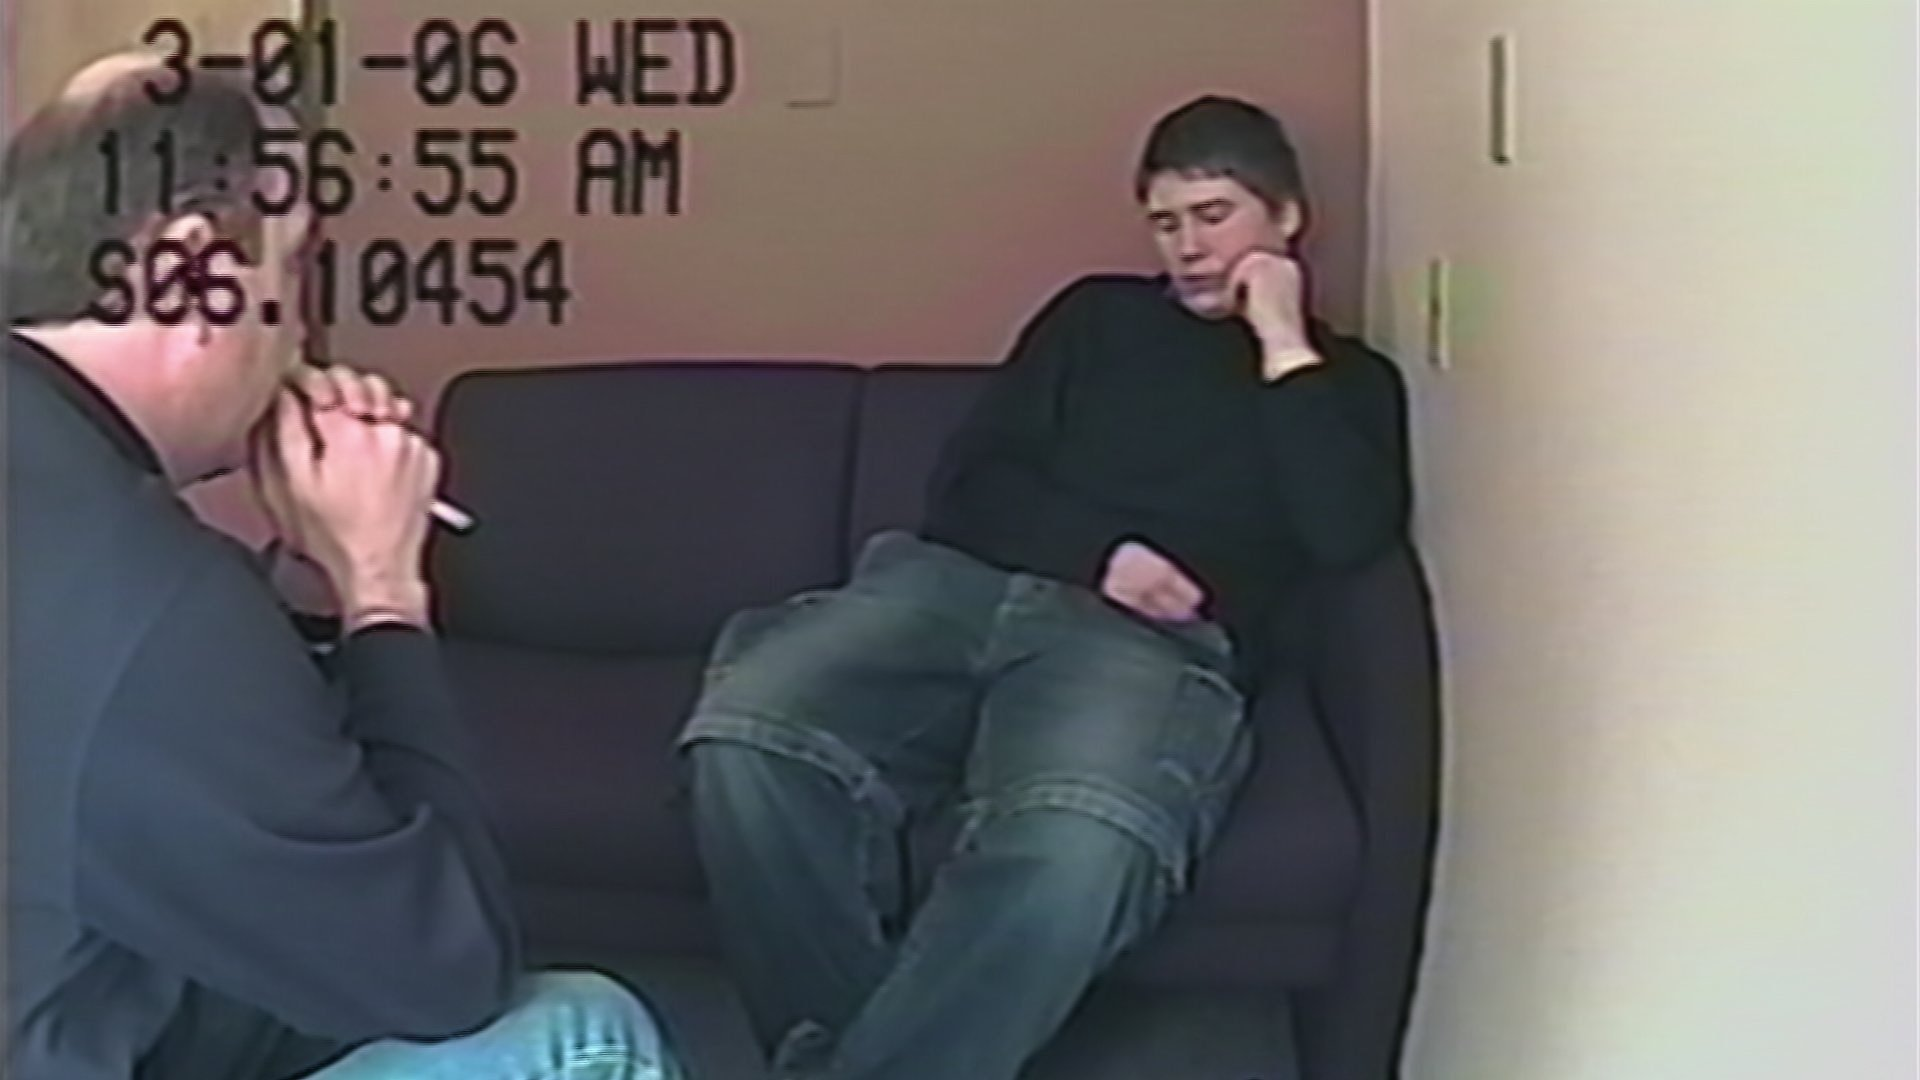 United States  court refuses to free convicted man featured in 'Making a Murderer'